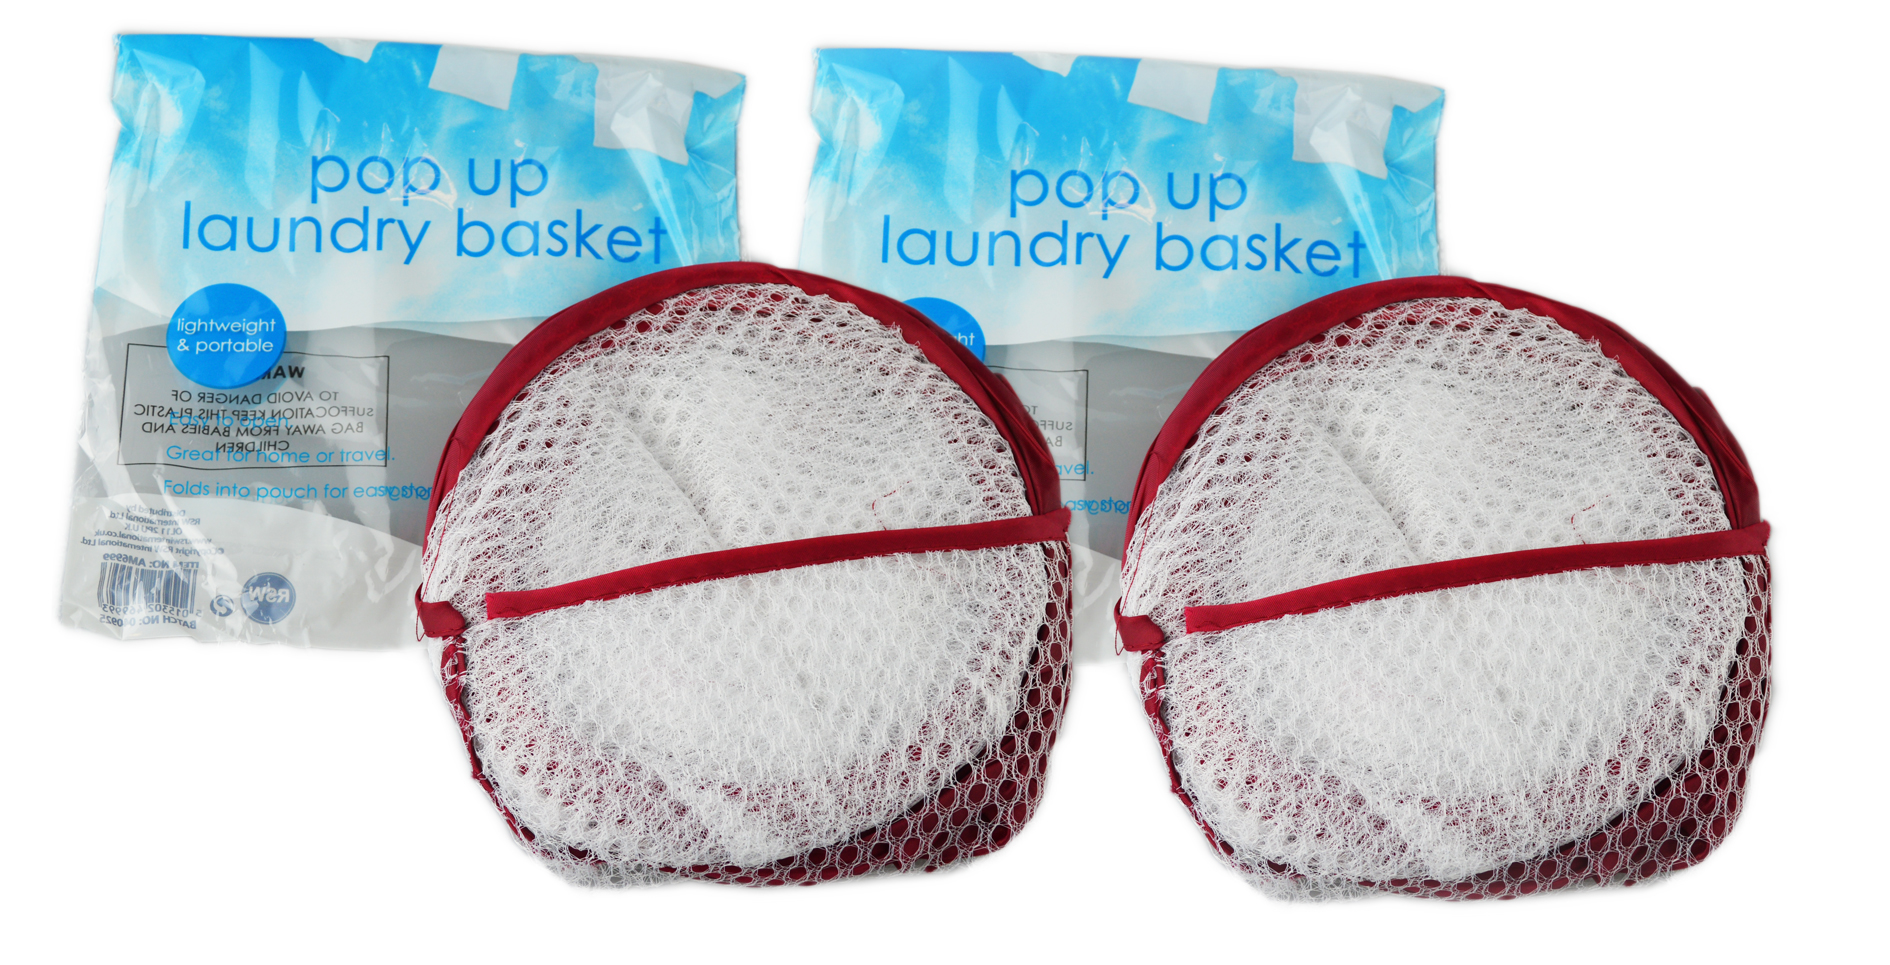 Folding-Mesh-Laundry-Basket-Ideal-for-Home-or-Travel-034-Royle-Home-034 thumbnail 3